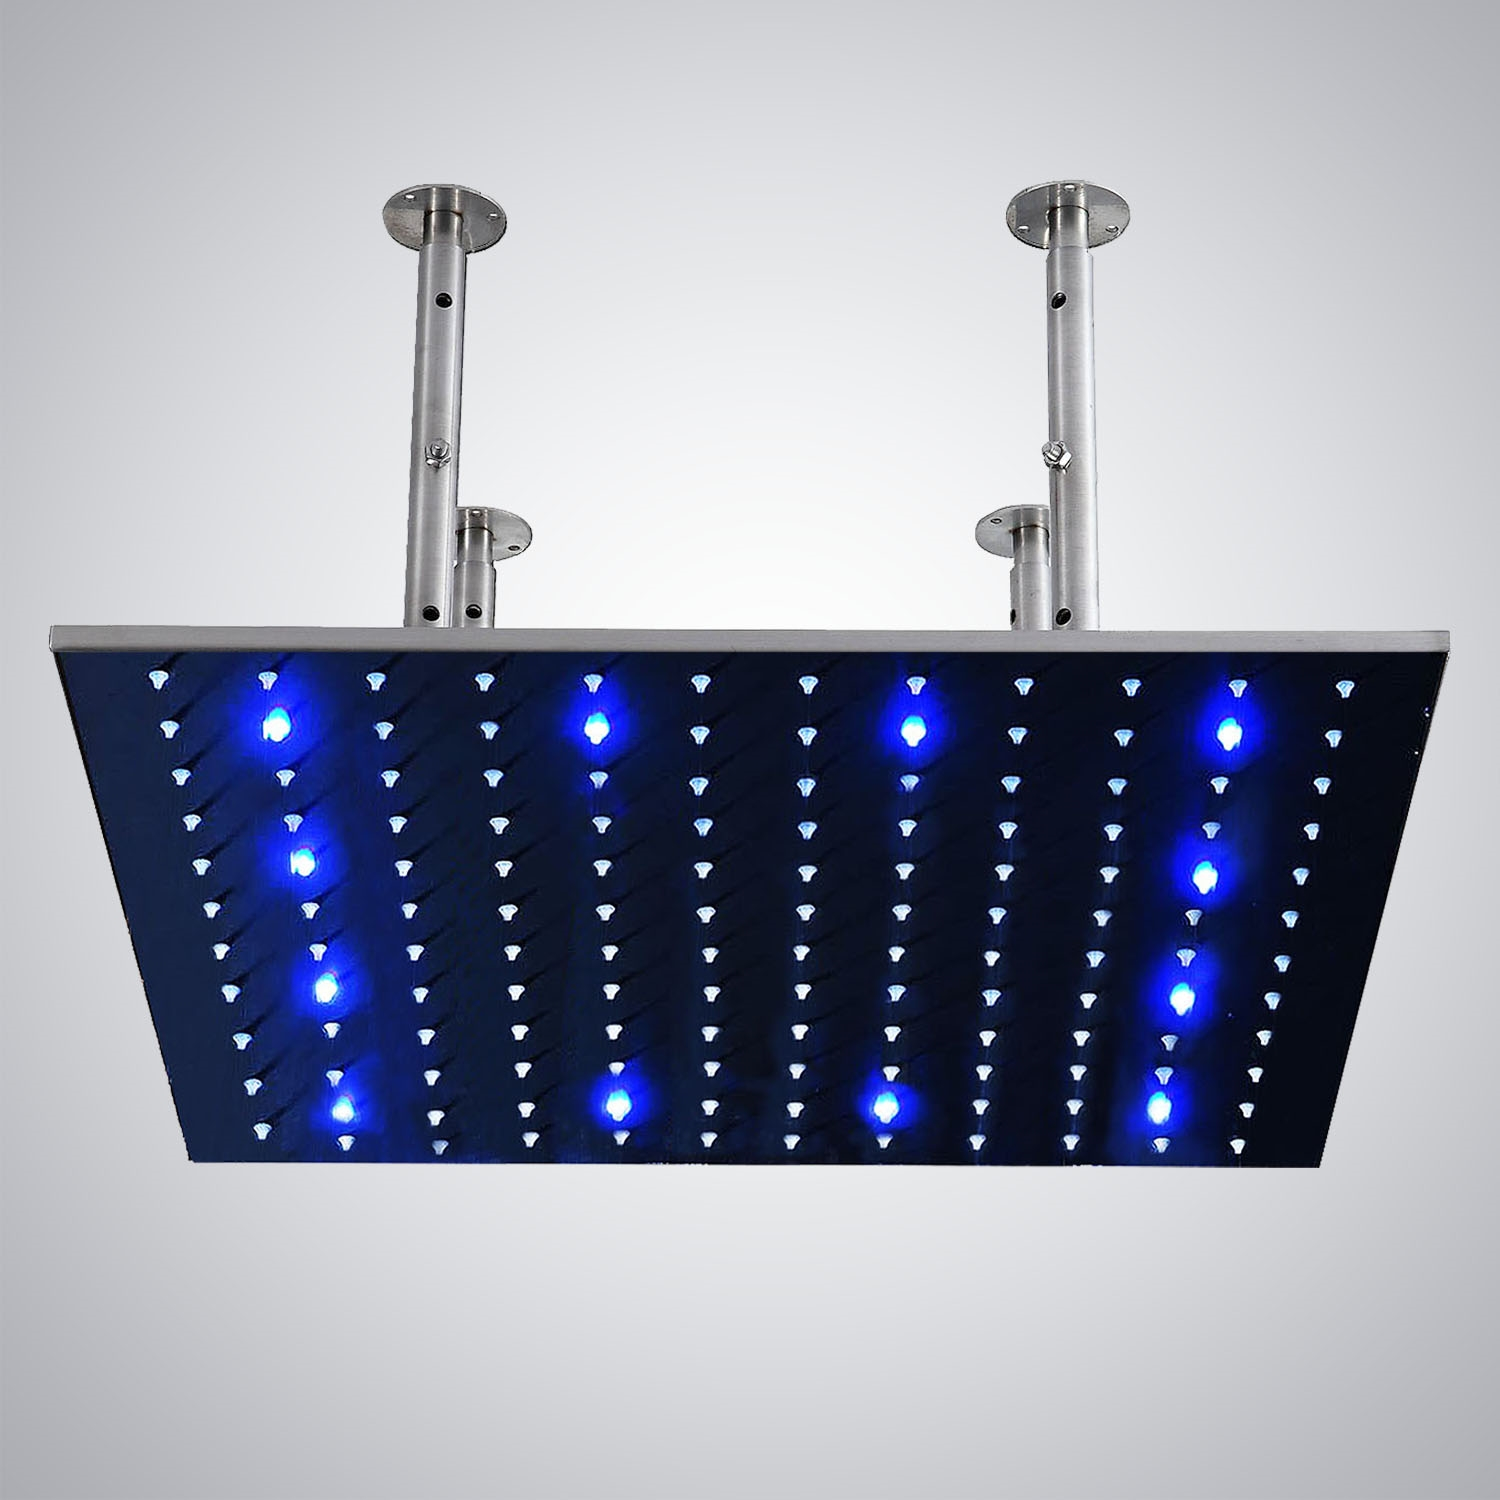 Fontana 30 Stainless Steel Square Color Changing Led Rain Showerhead